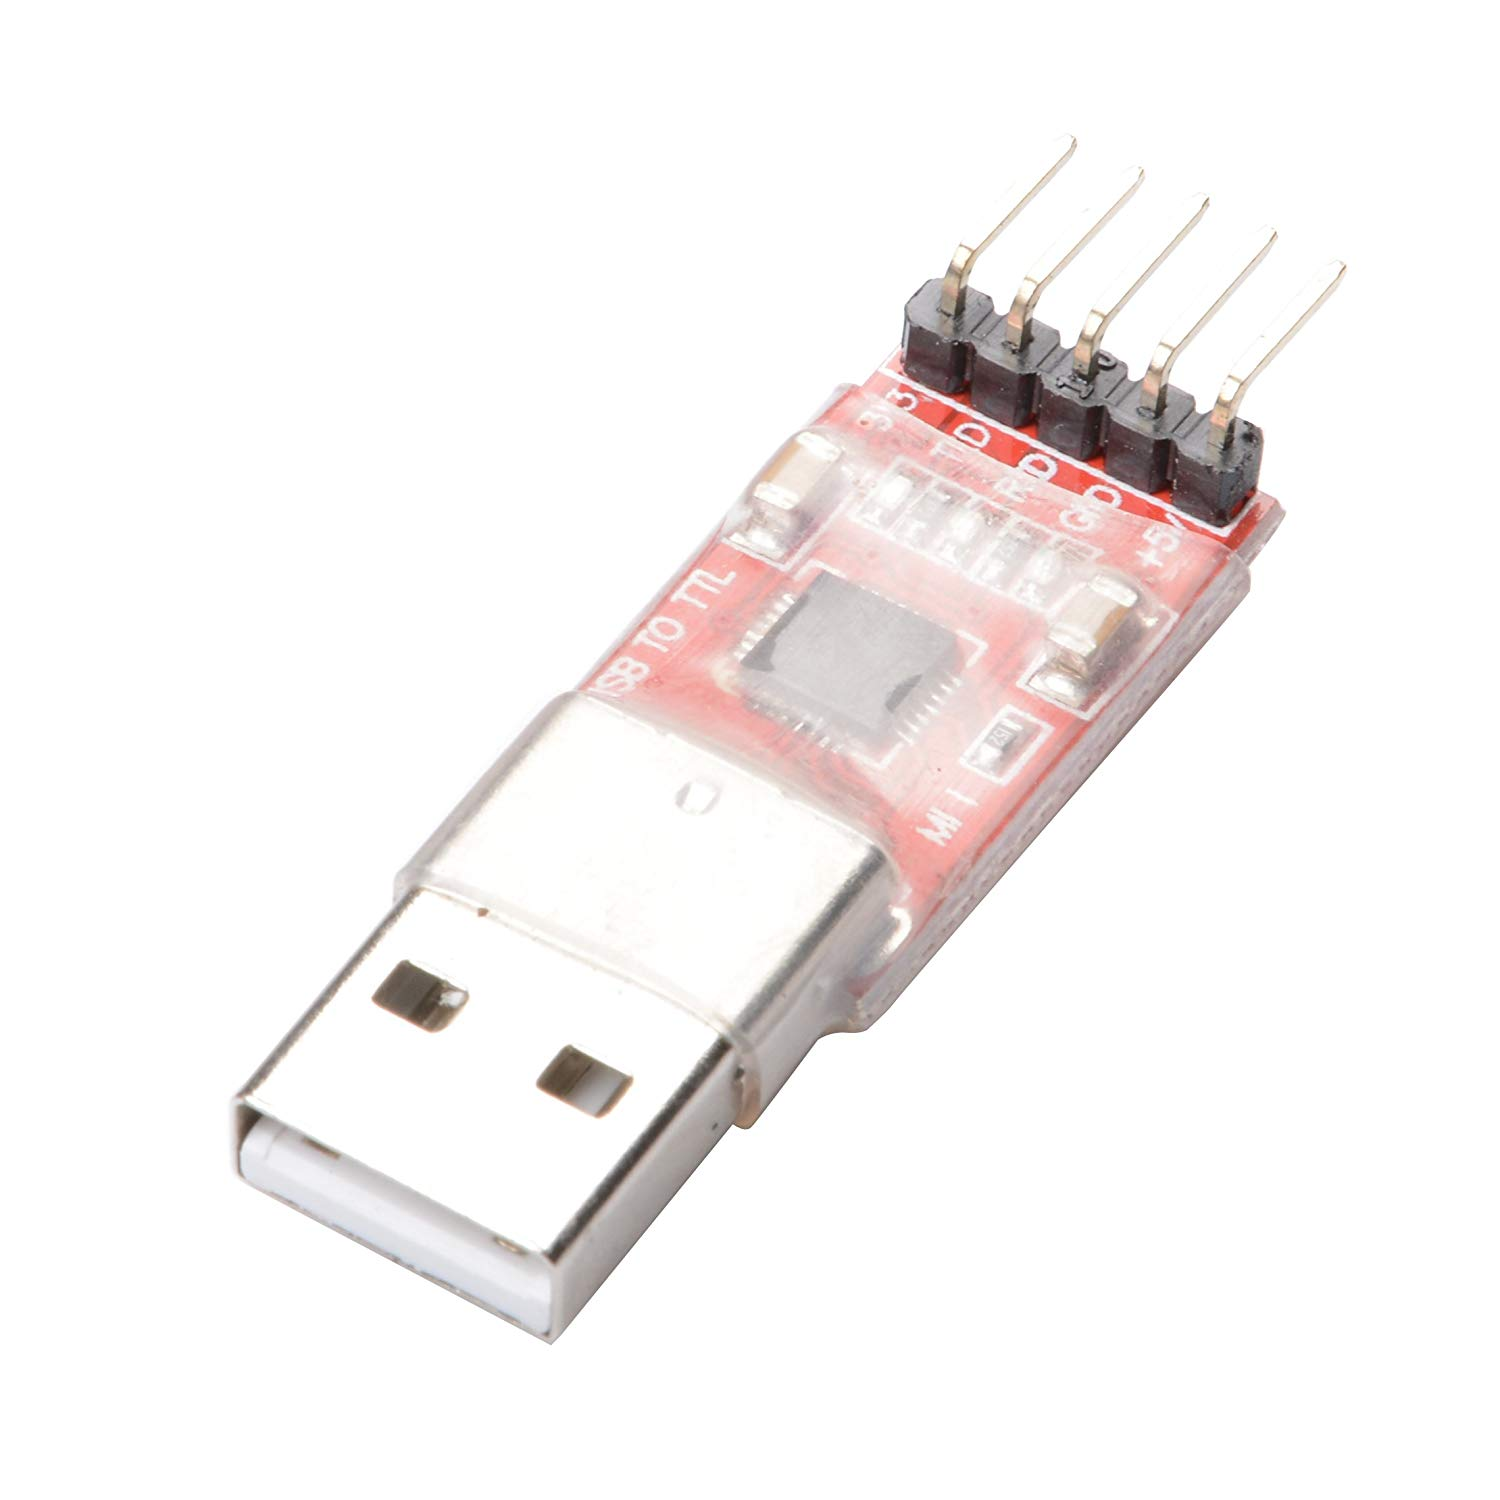 CP2102 USB 2.0 to TTL Module Serial Converter Adapter Module USB to TTL Downloader With Jumper Wires